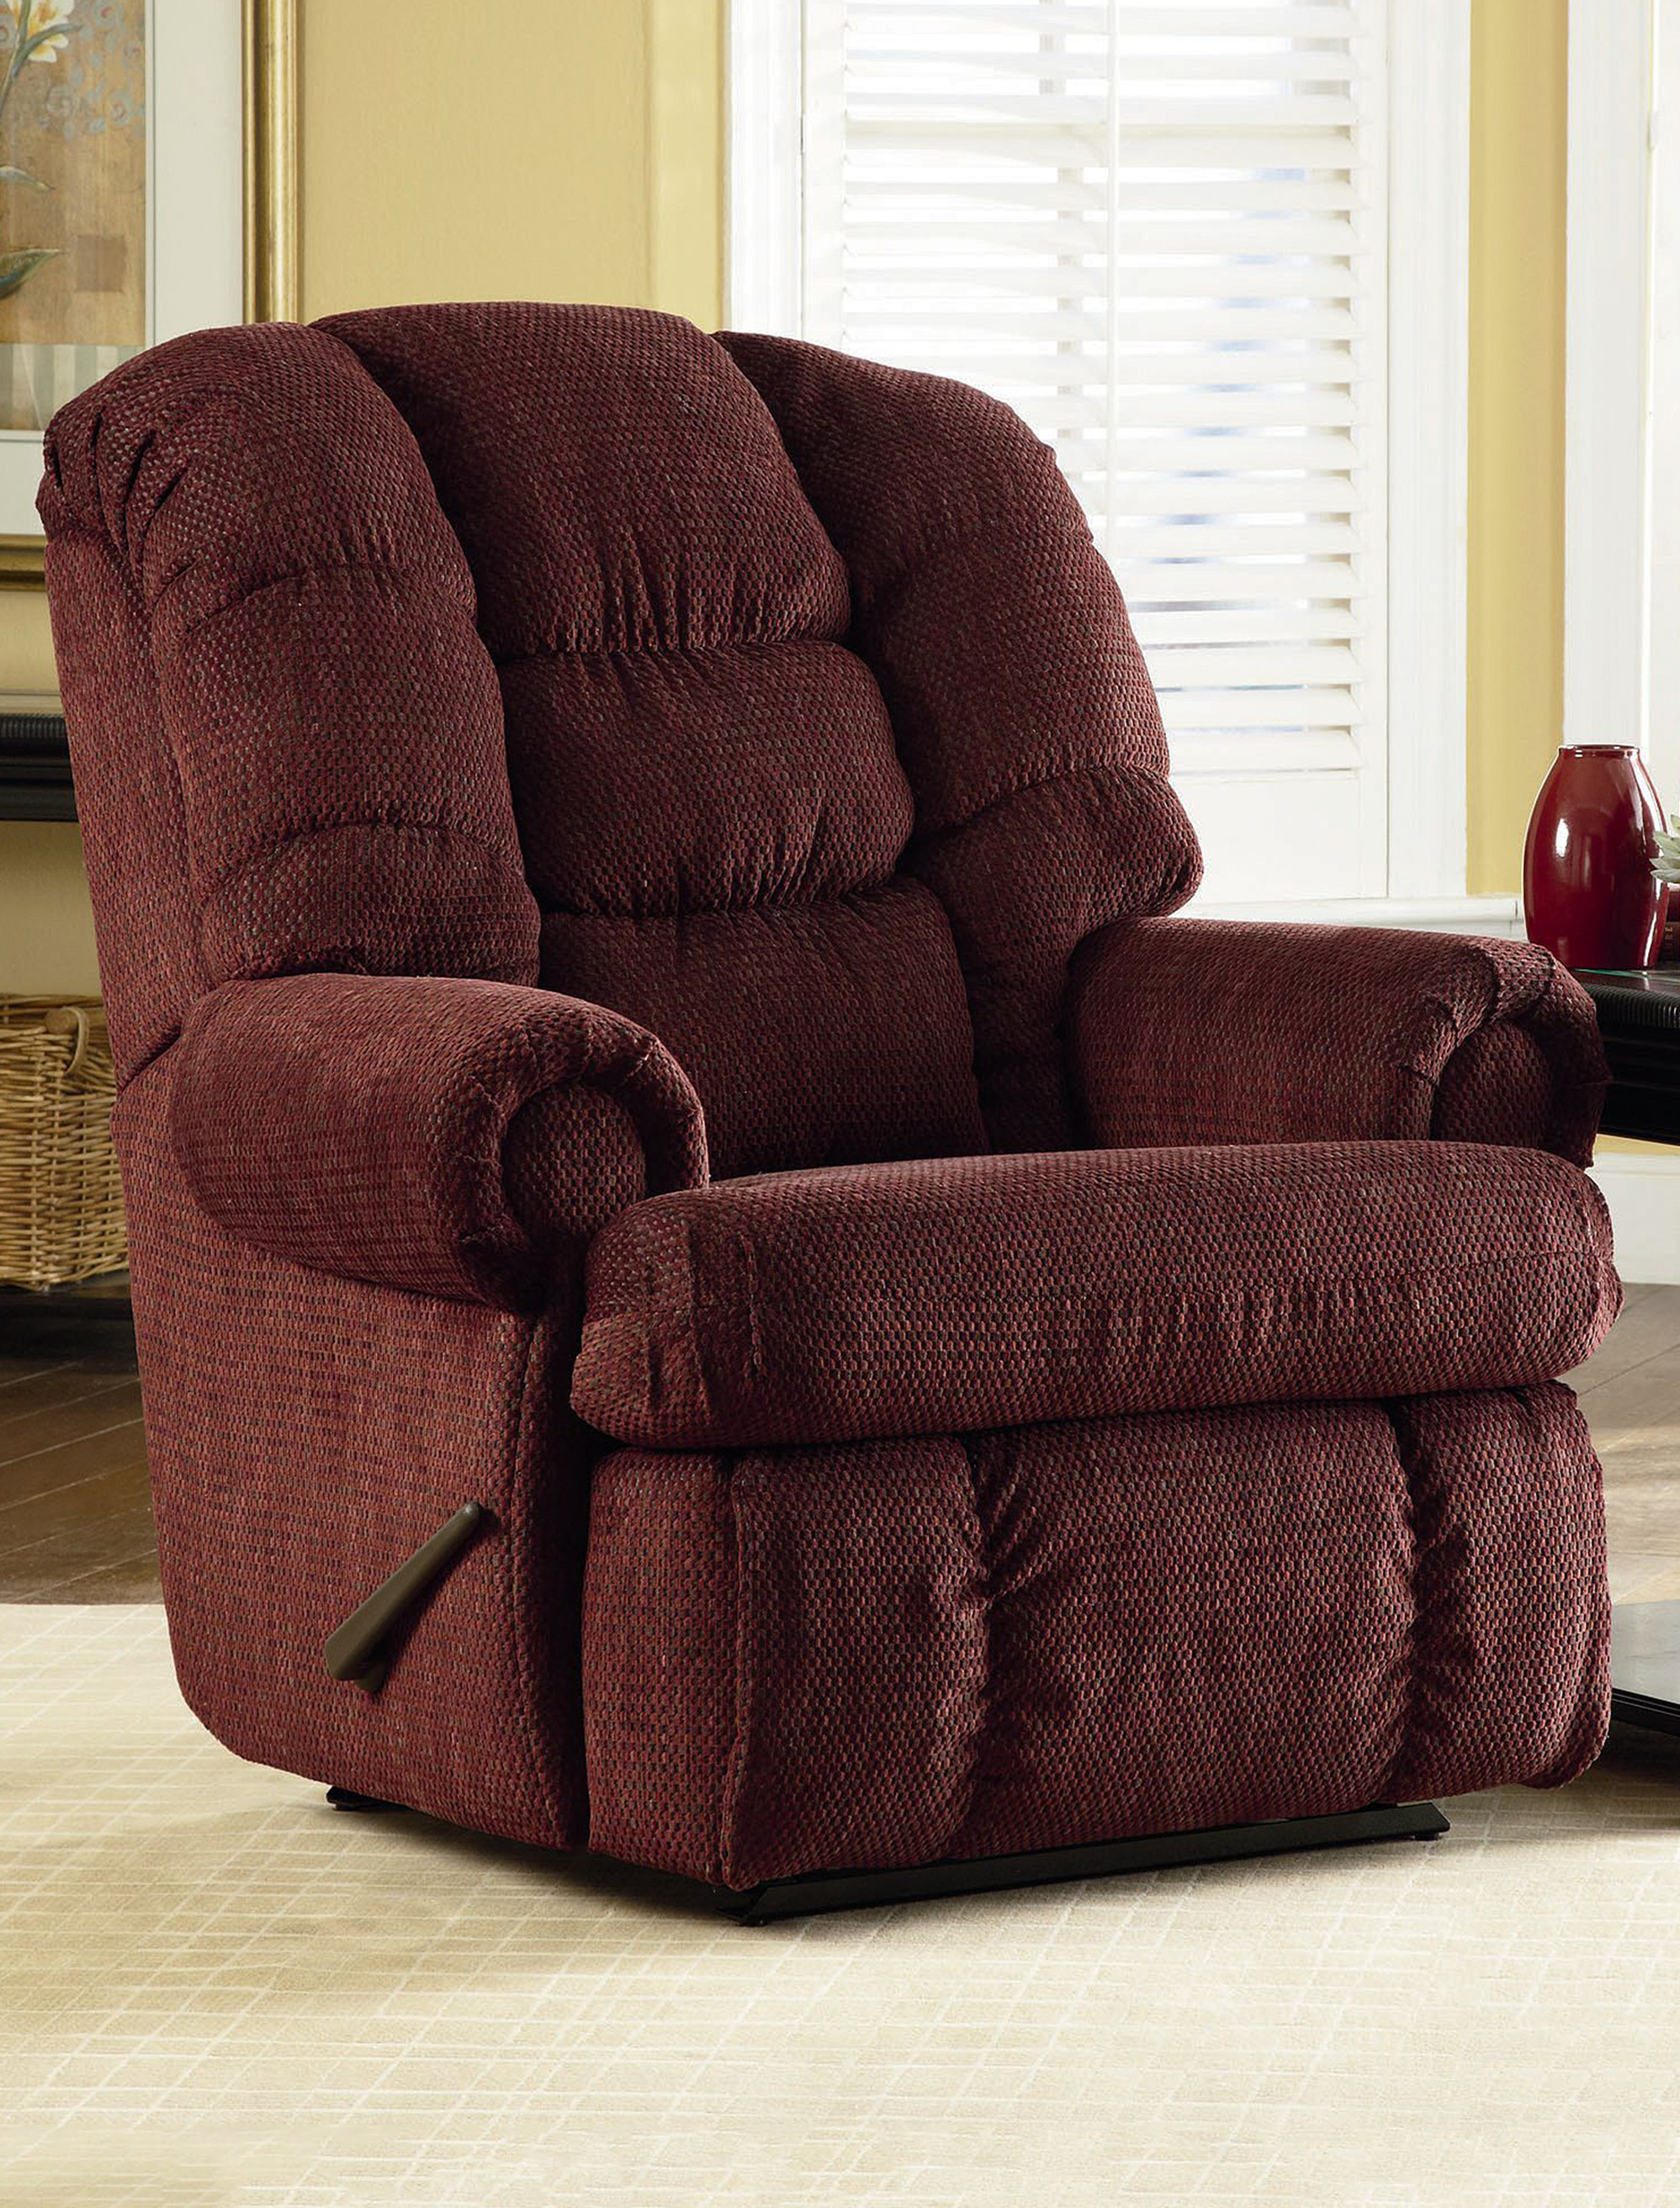 & Lane® Furniture ComfortKing® Recliner islam-shia.org